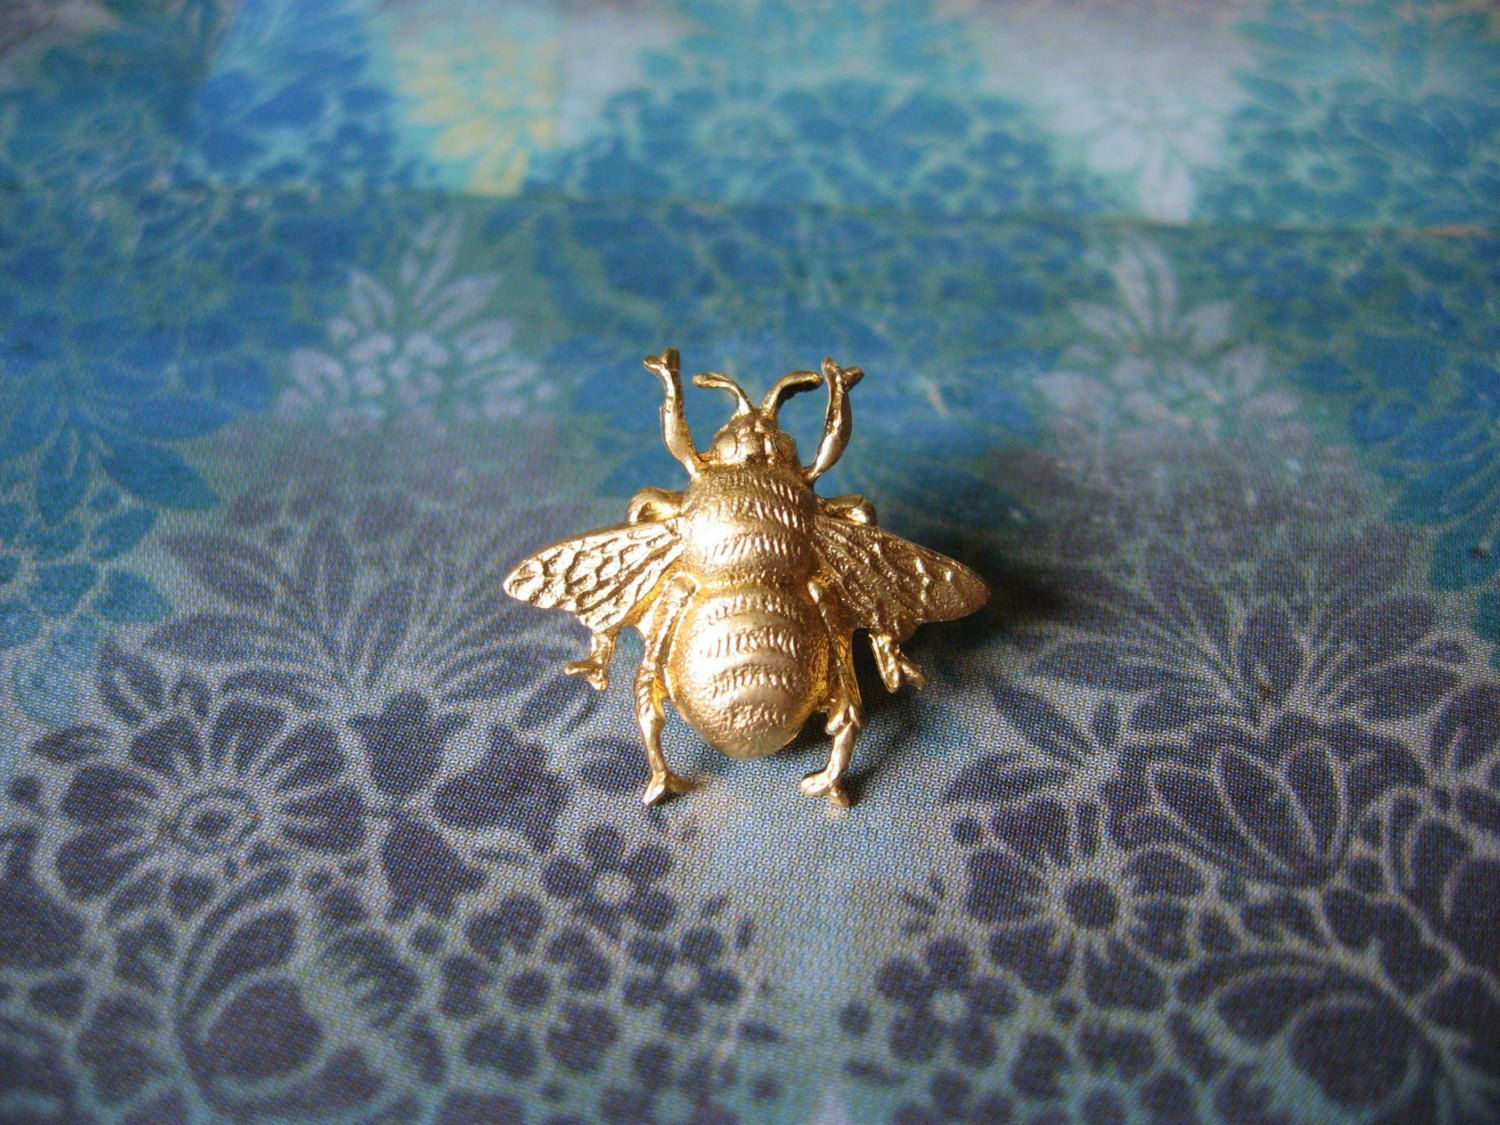 0ae2972b920 Bumble Bee Tiny Golden Bumble Bee Brooch Lapel Pin or Tie